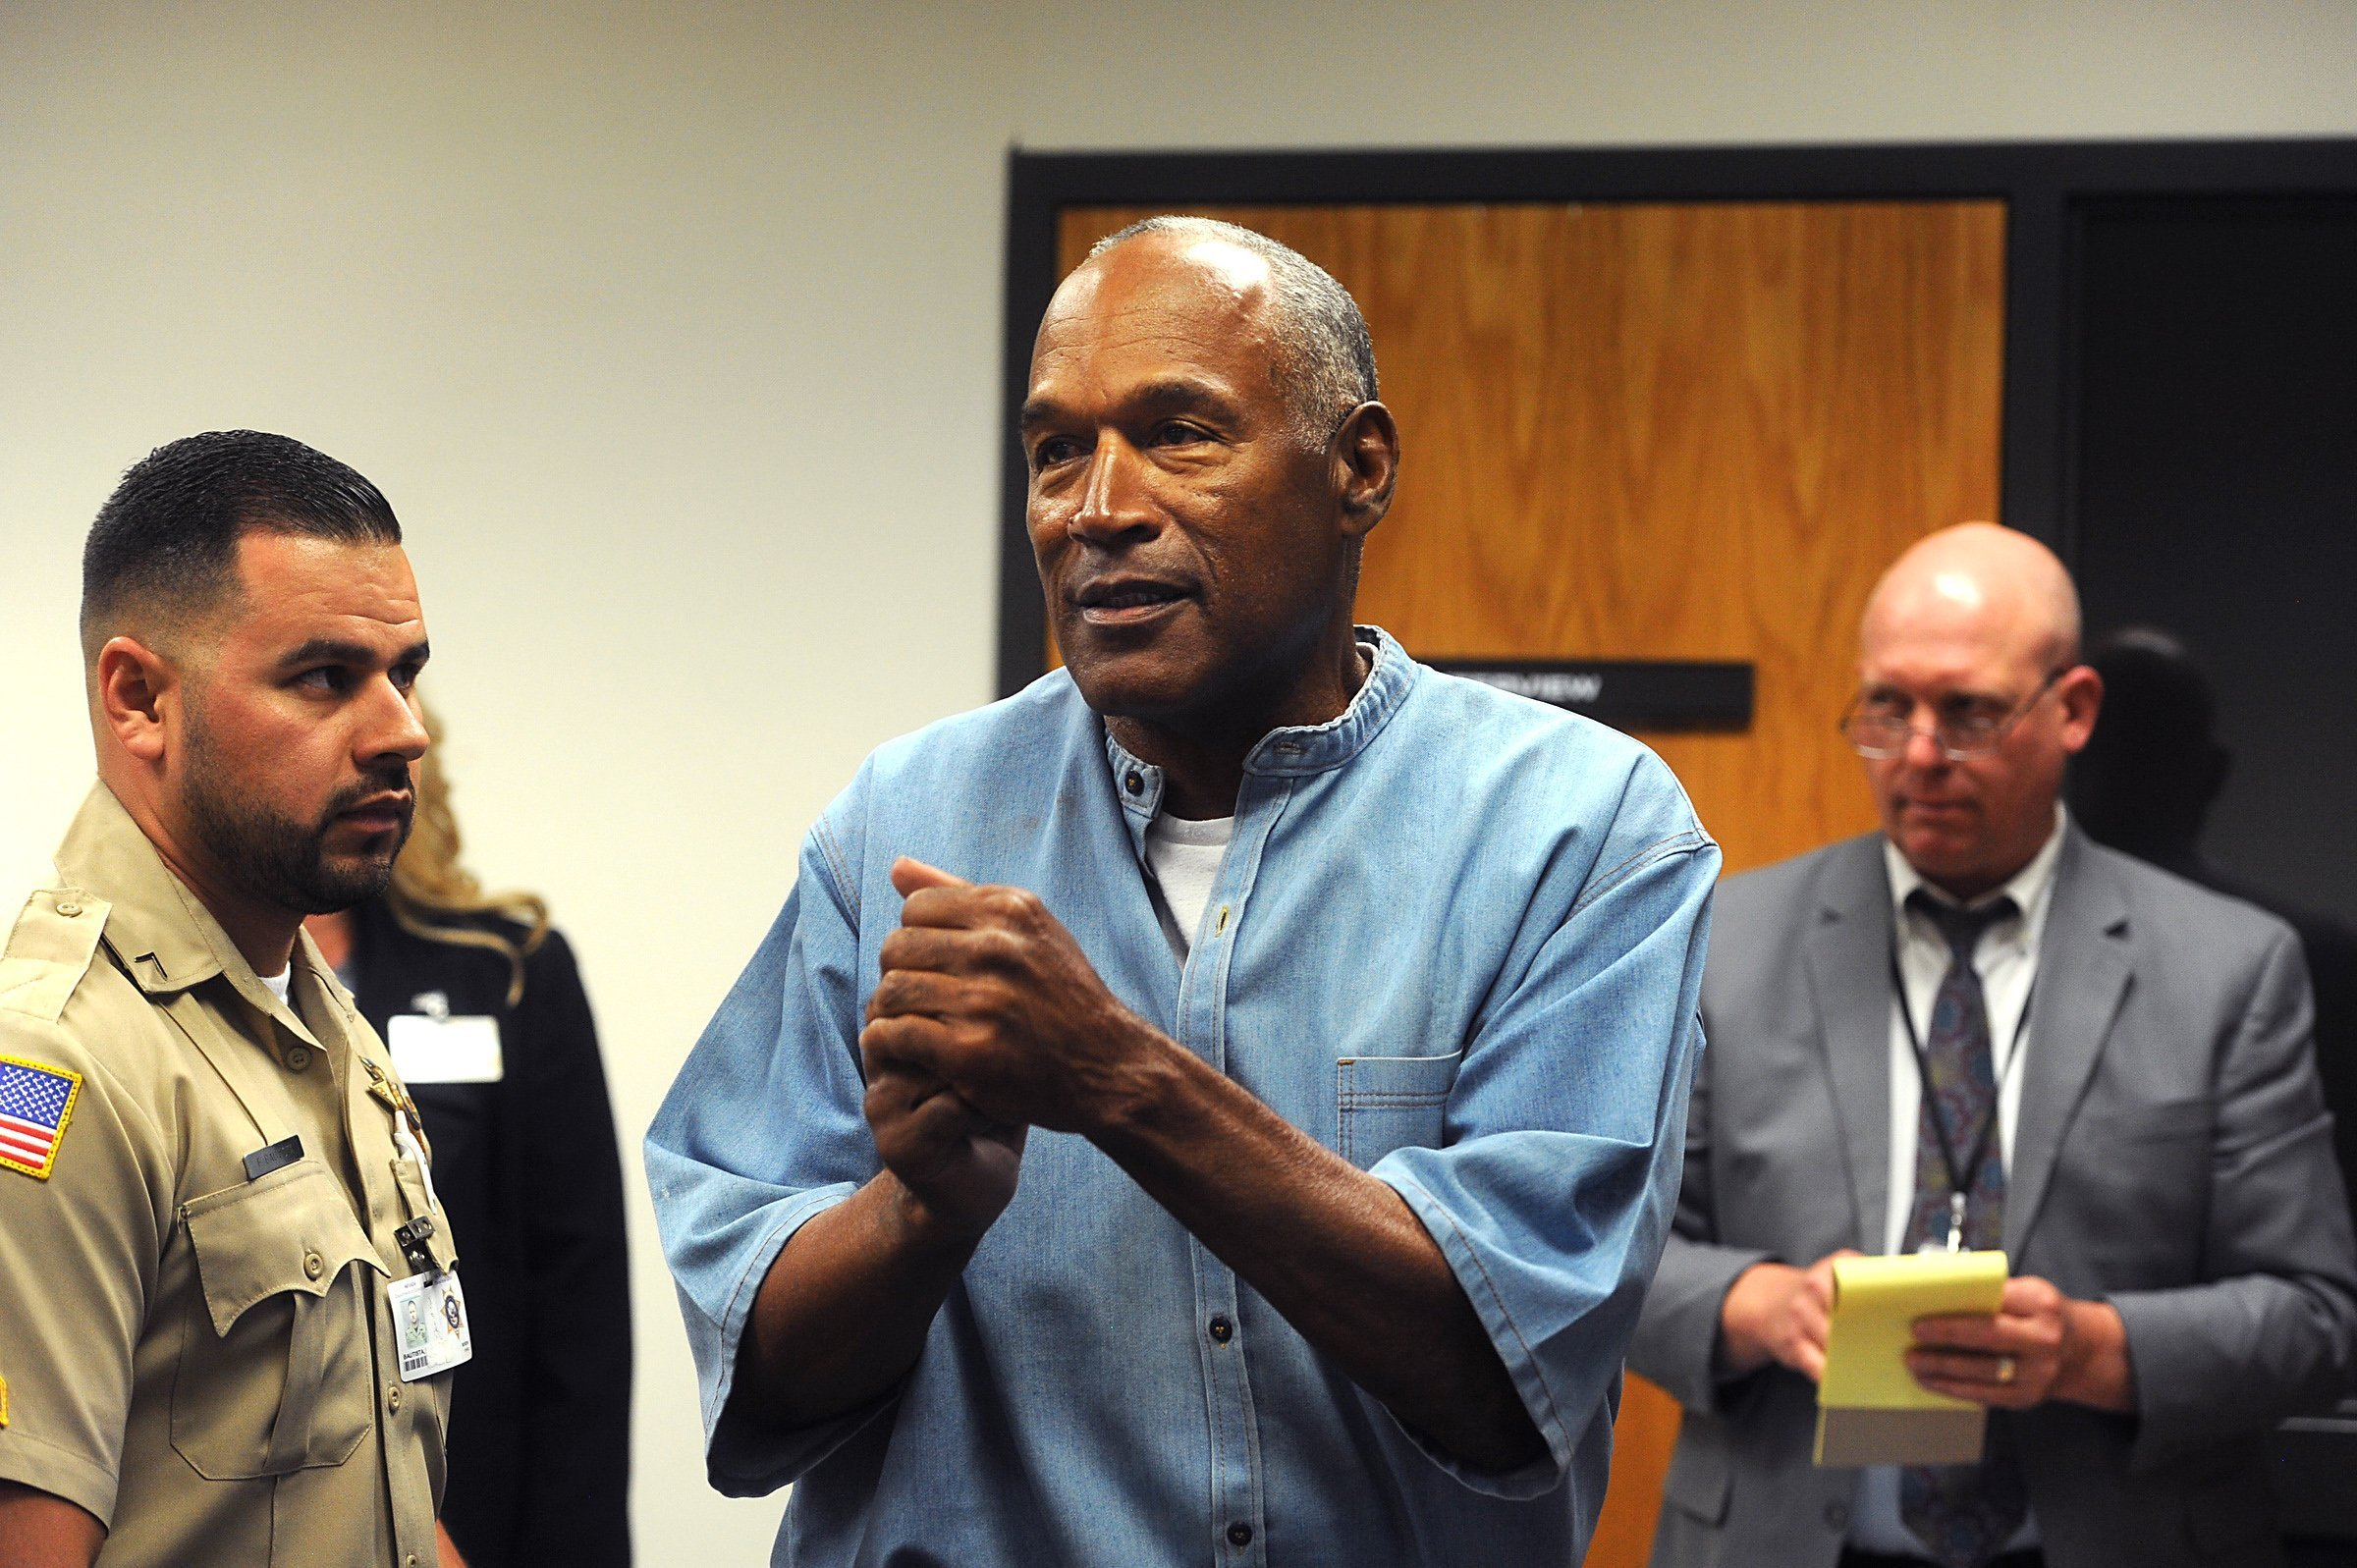 OJ Simpson during a hearing granting his parole in July 2017. | Photo: Getty Images